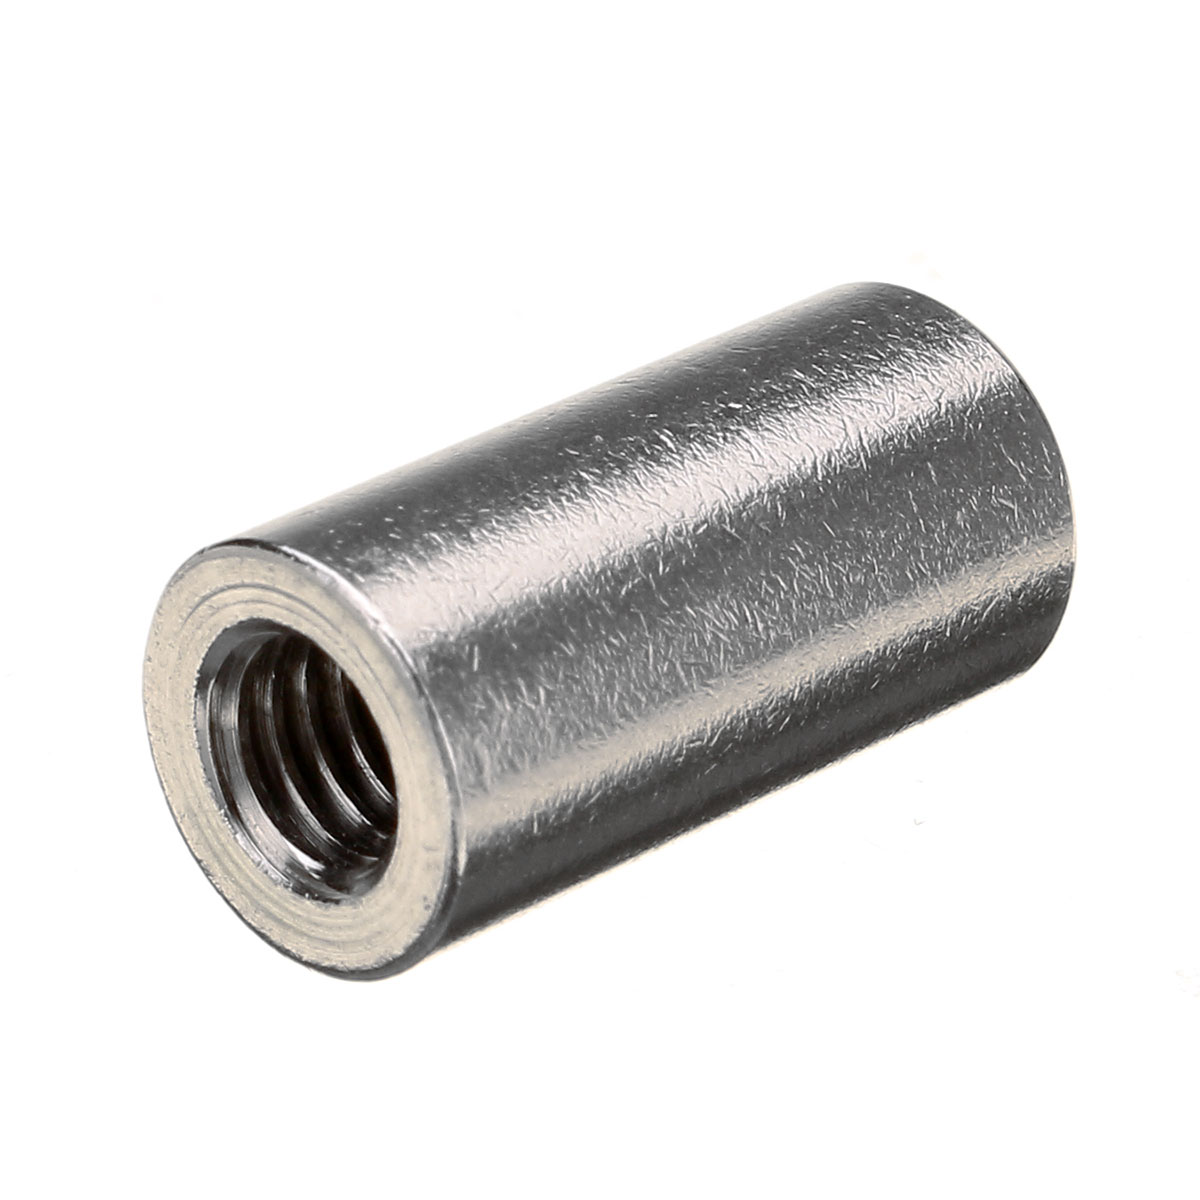 Stainless Long Stud Rod Nuts Threaded Bar Connectors